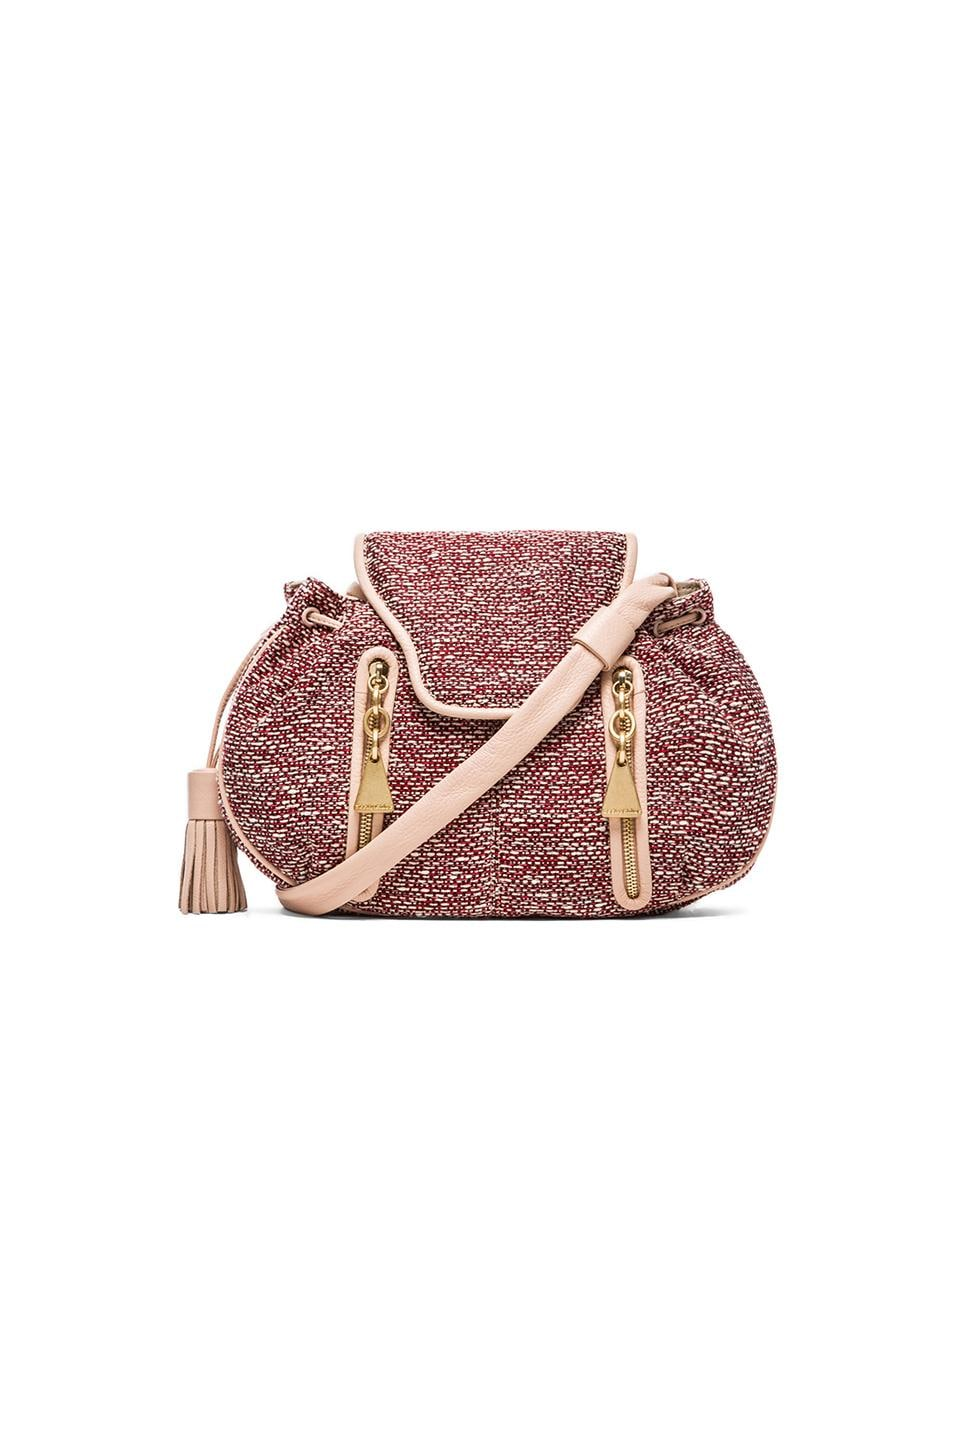 See By Chloe Cherry Small Crossbody Bag in Muse